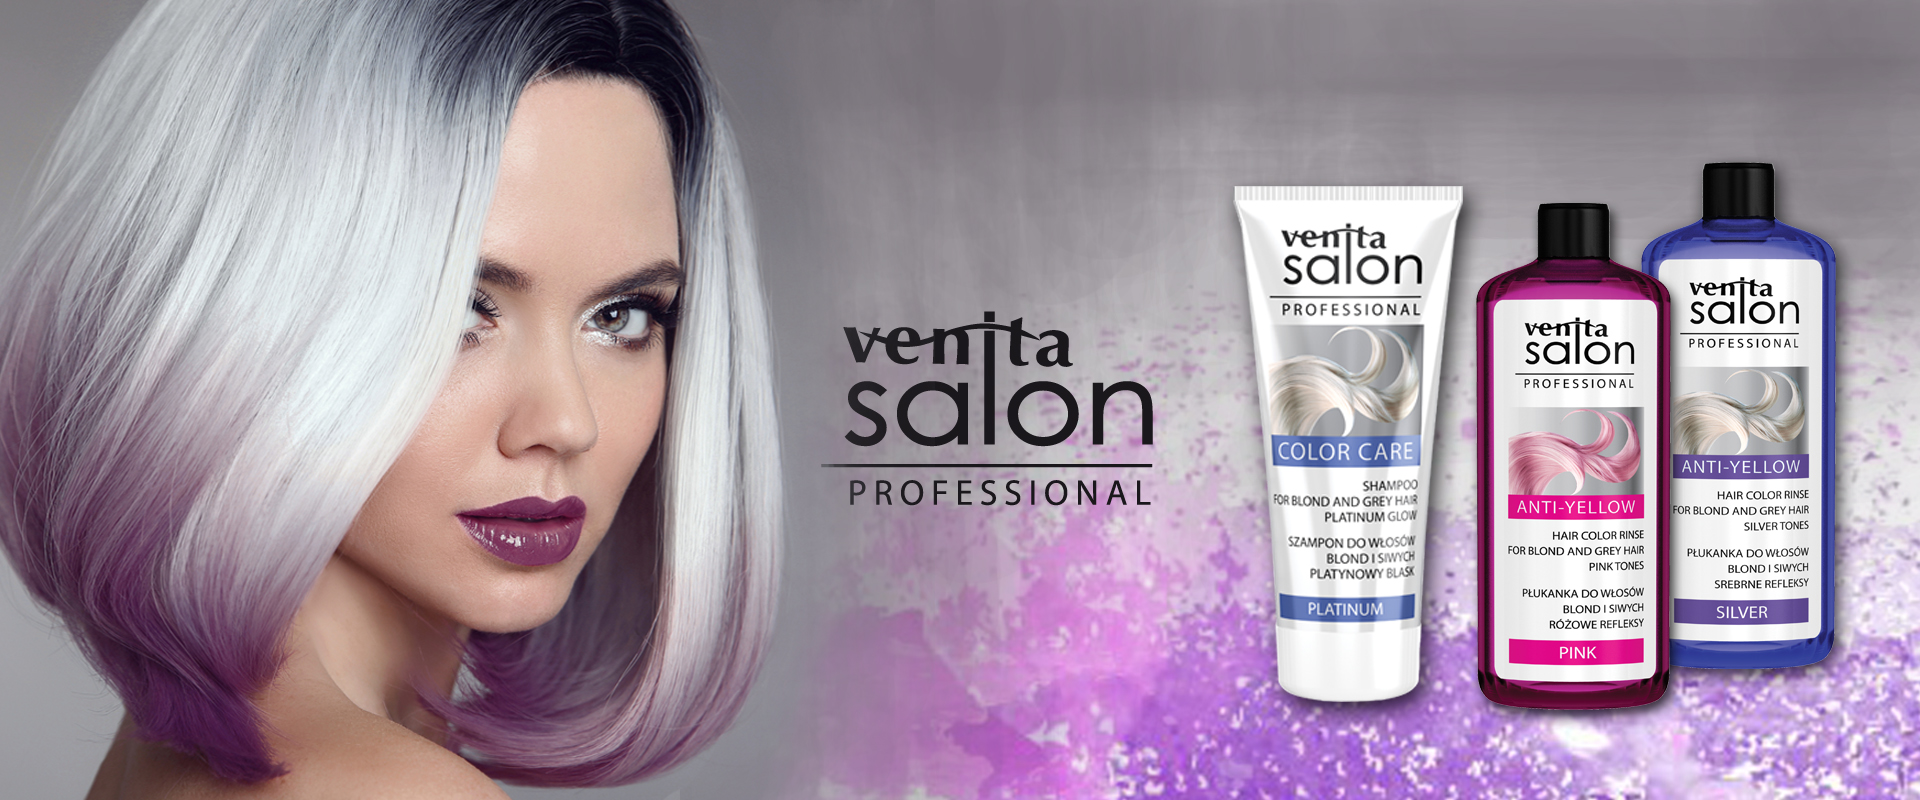 There is a young woman with gray hair and purple tips presenting revitalising hair shampoos